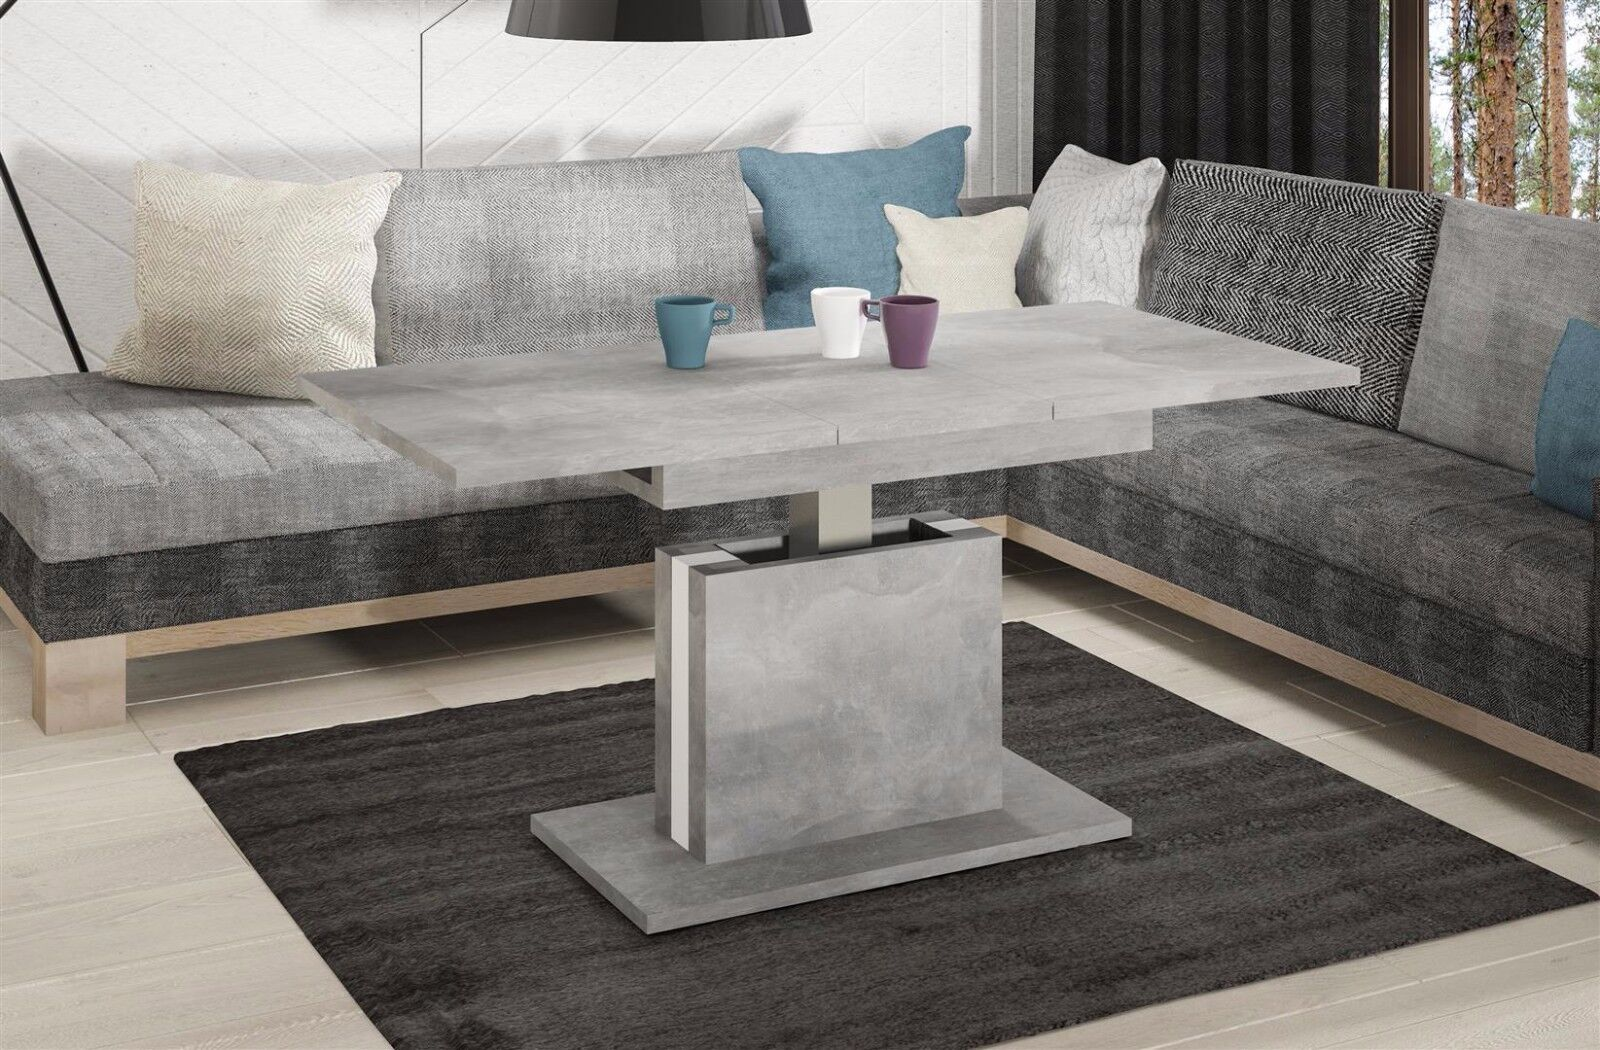 couchtisch ausziehbar h henverstellbar beton tisch funktionstisch wohnzimmer kaufen bei madera. Black Bedroom Furniture Sets. Home Design Ideas